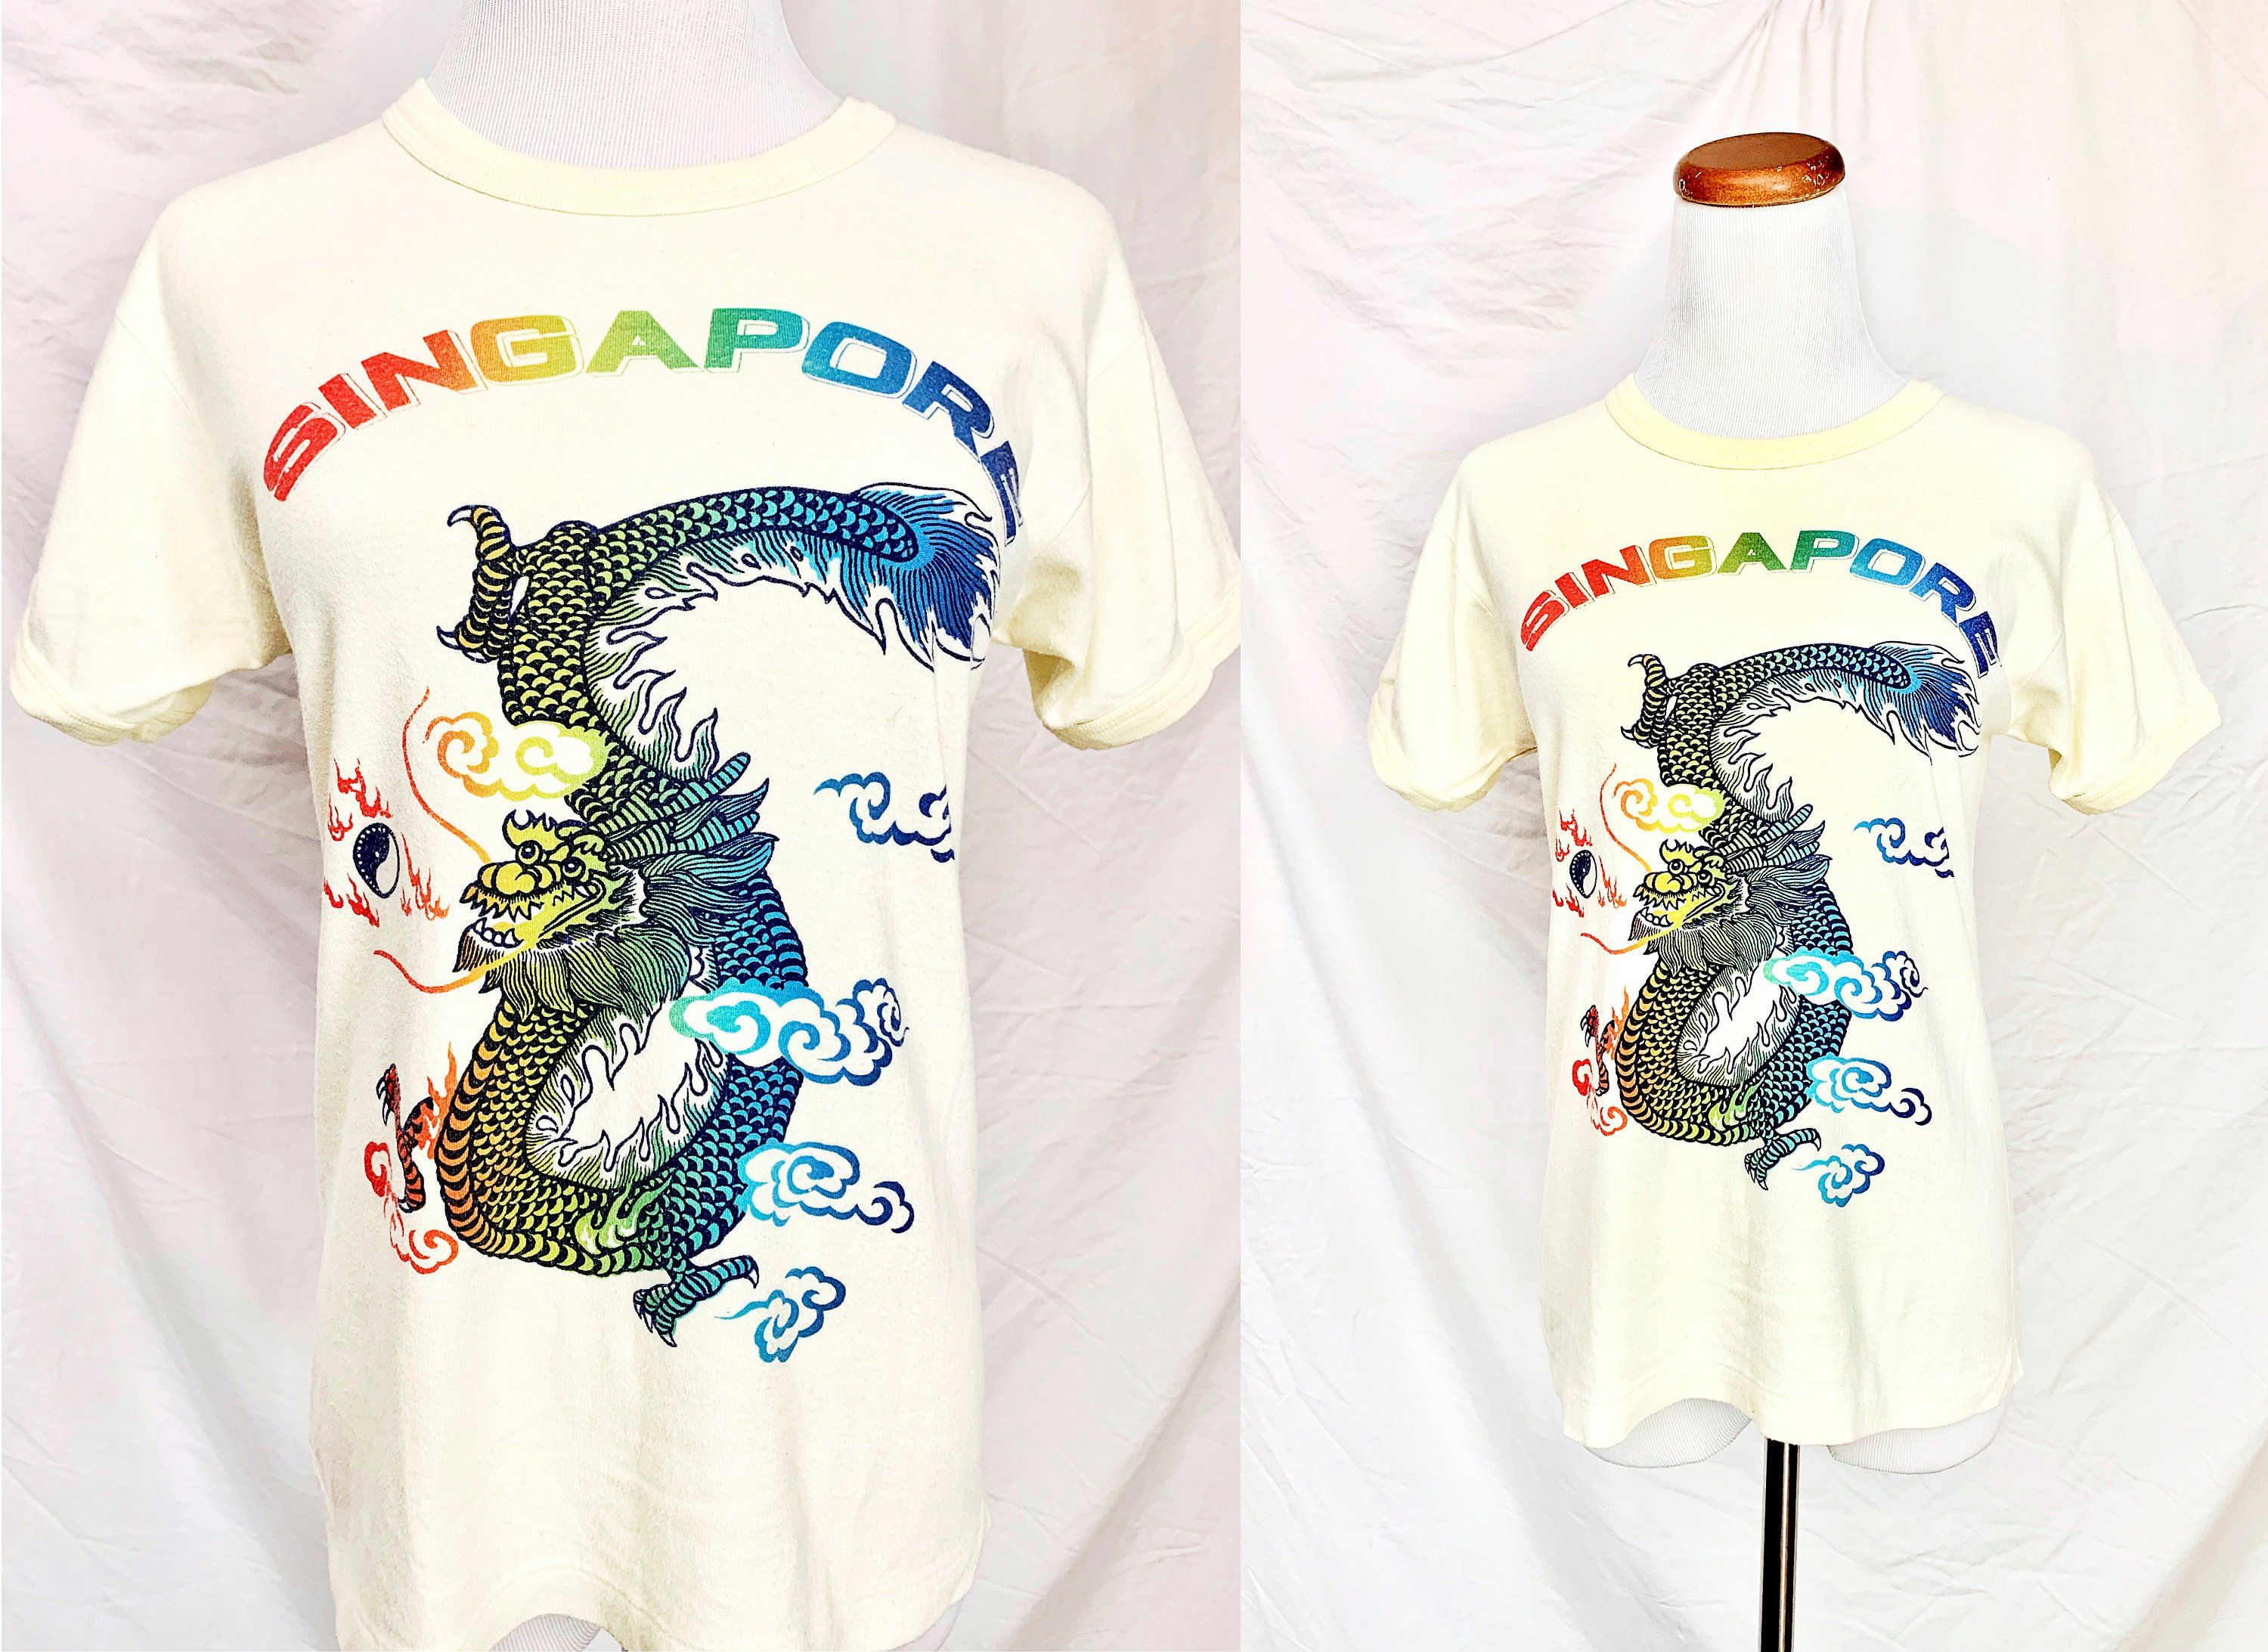 Singapore Dragon 1970 S T Shirt Vintage 70s Graphic Tee Size Small Vintage Outfits Women Fashion